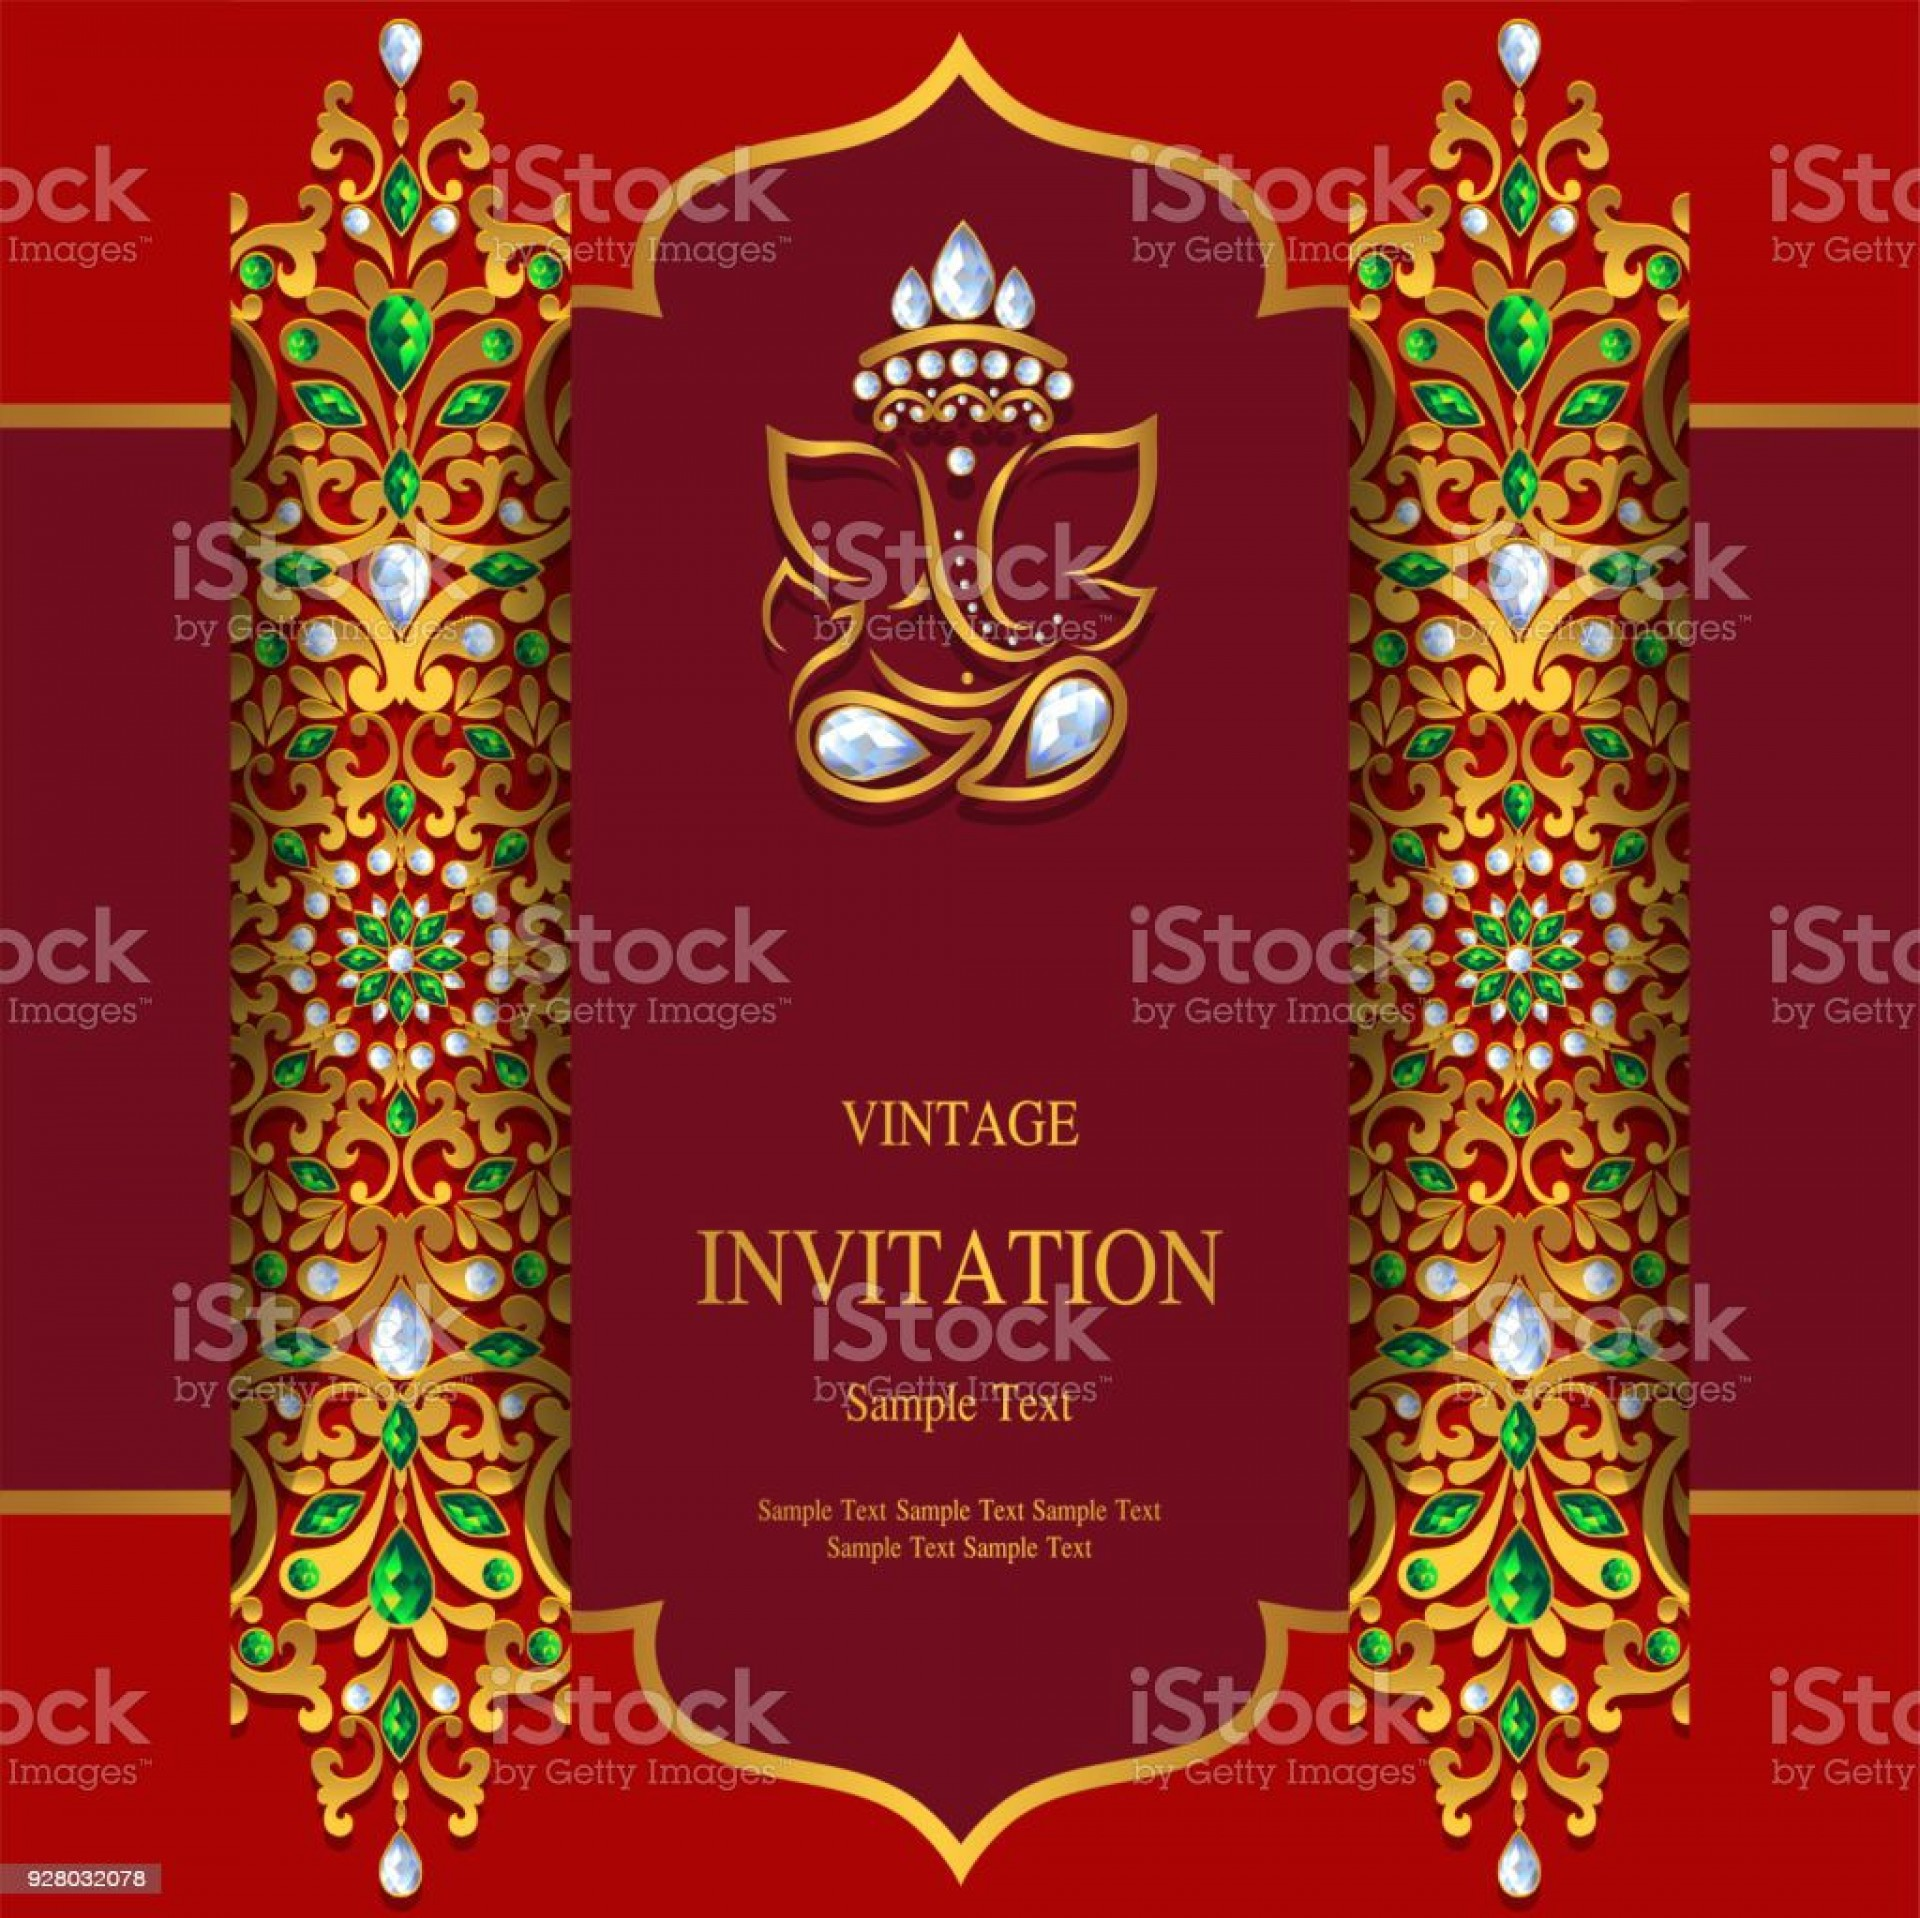 008 Fascinating Indian Wedding Invitation Template High Resolution  Psd Free Download Marriage Online For Friend1920